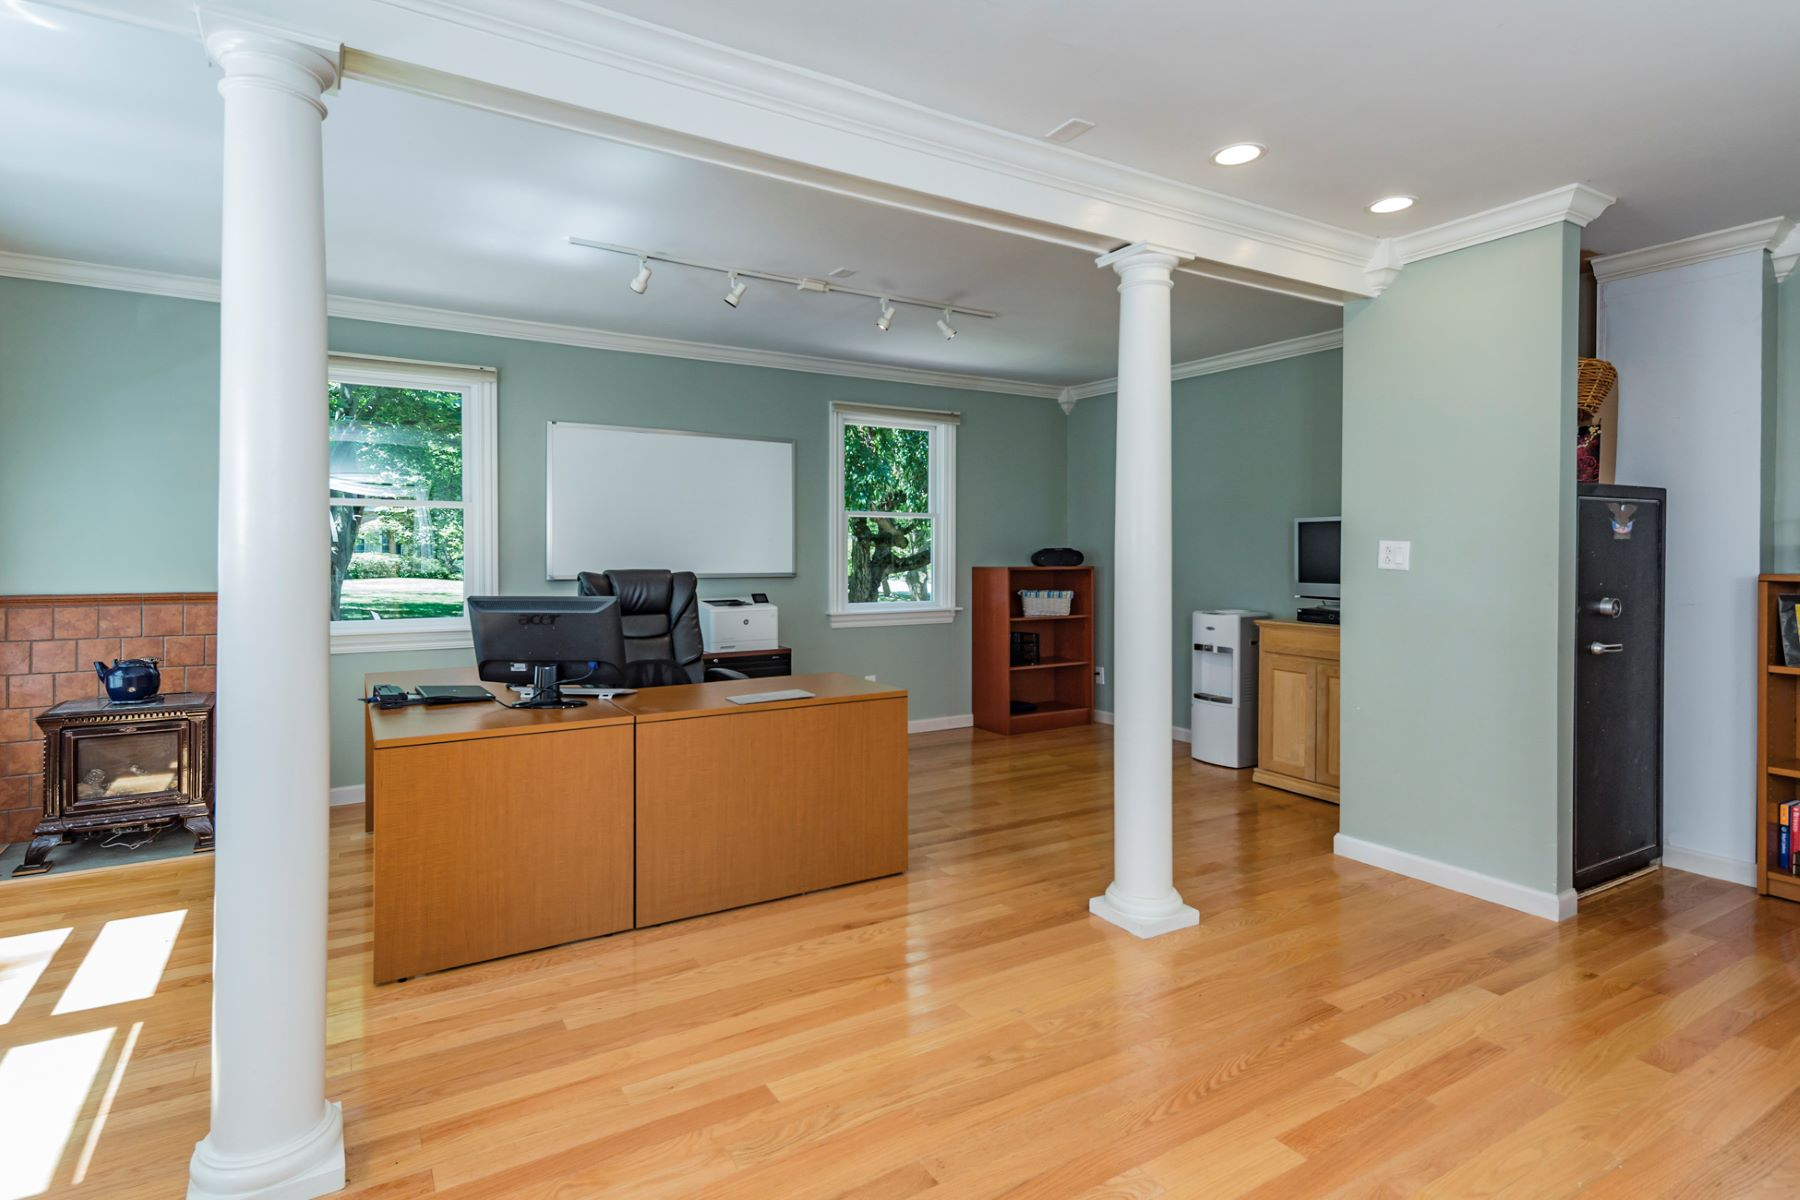 Additional photo for property listing at Impeccably Renovated in Lawrenceville Greene 4 Hamilton Court, Lawrenceville, New Jersey 08648 United States